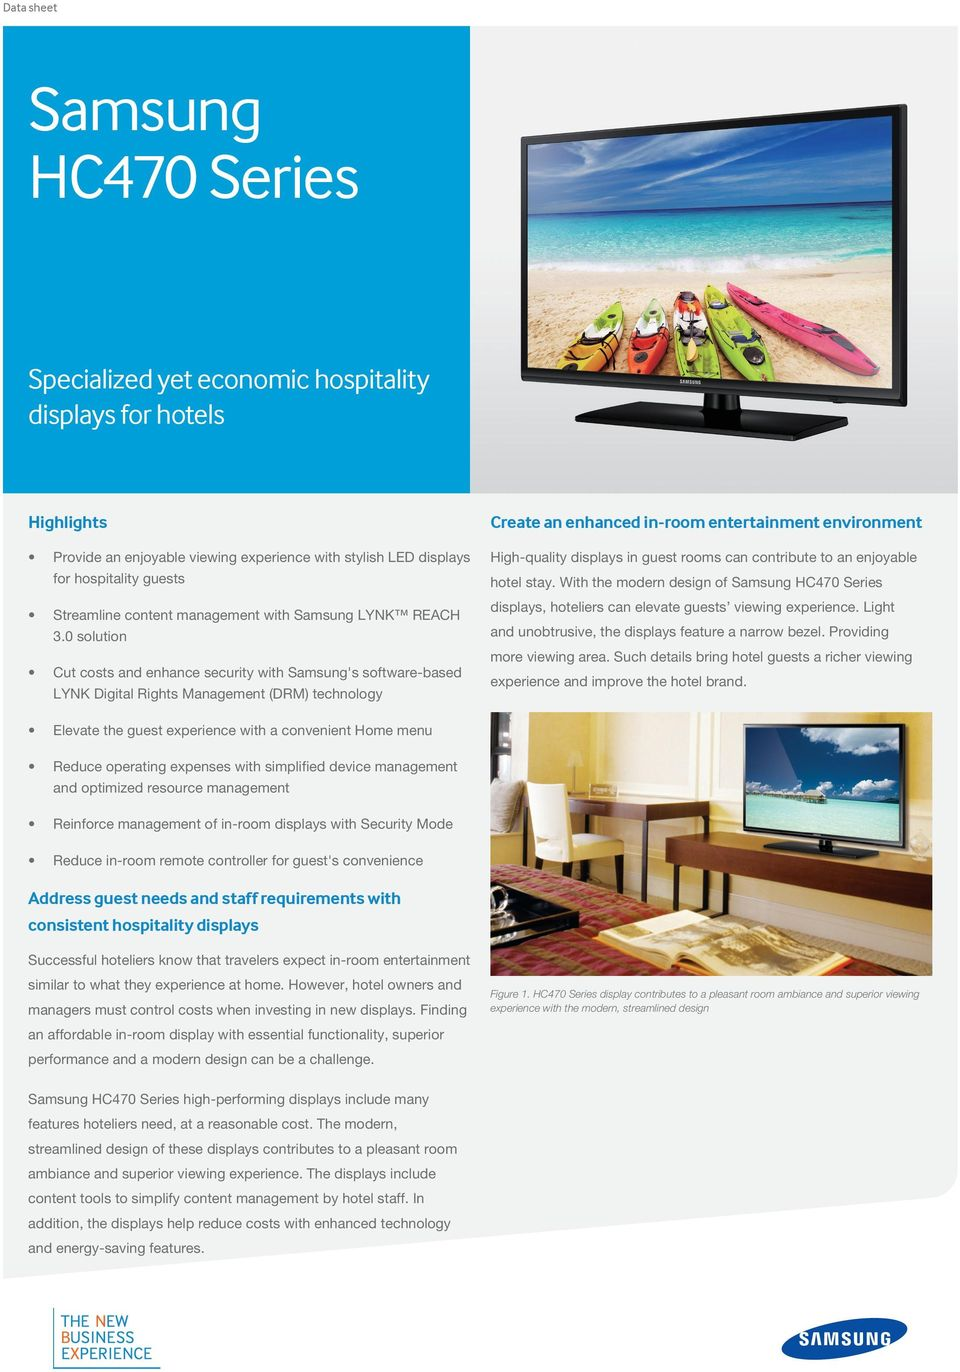 0 solution Cut costs and enhance security with Samsung's software-based LYNK Digital Rights Management (DRM) technology Create an enhanced in-room entertainment environment High-quality displays in